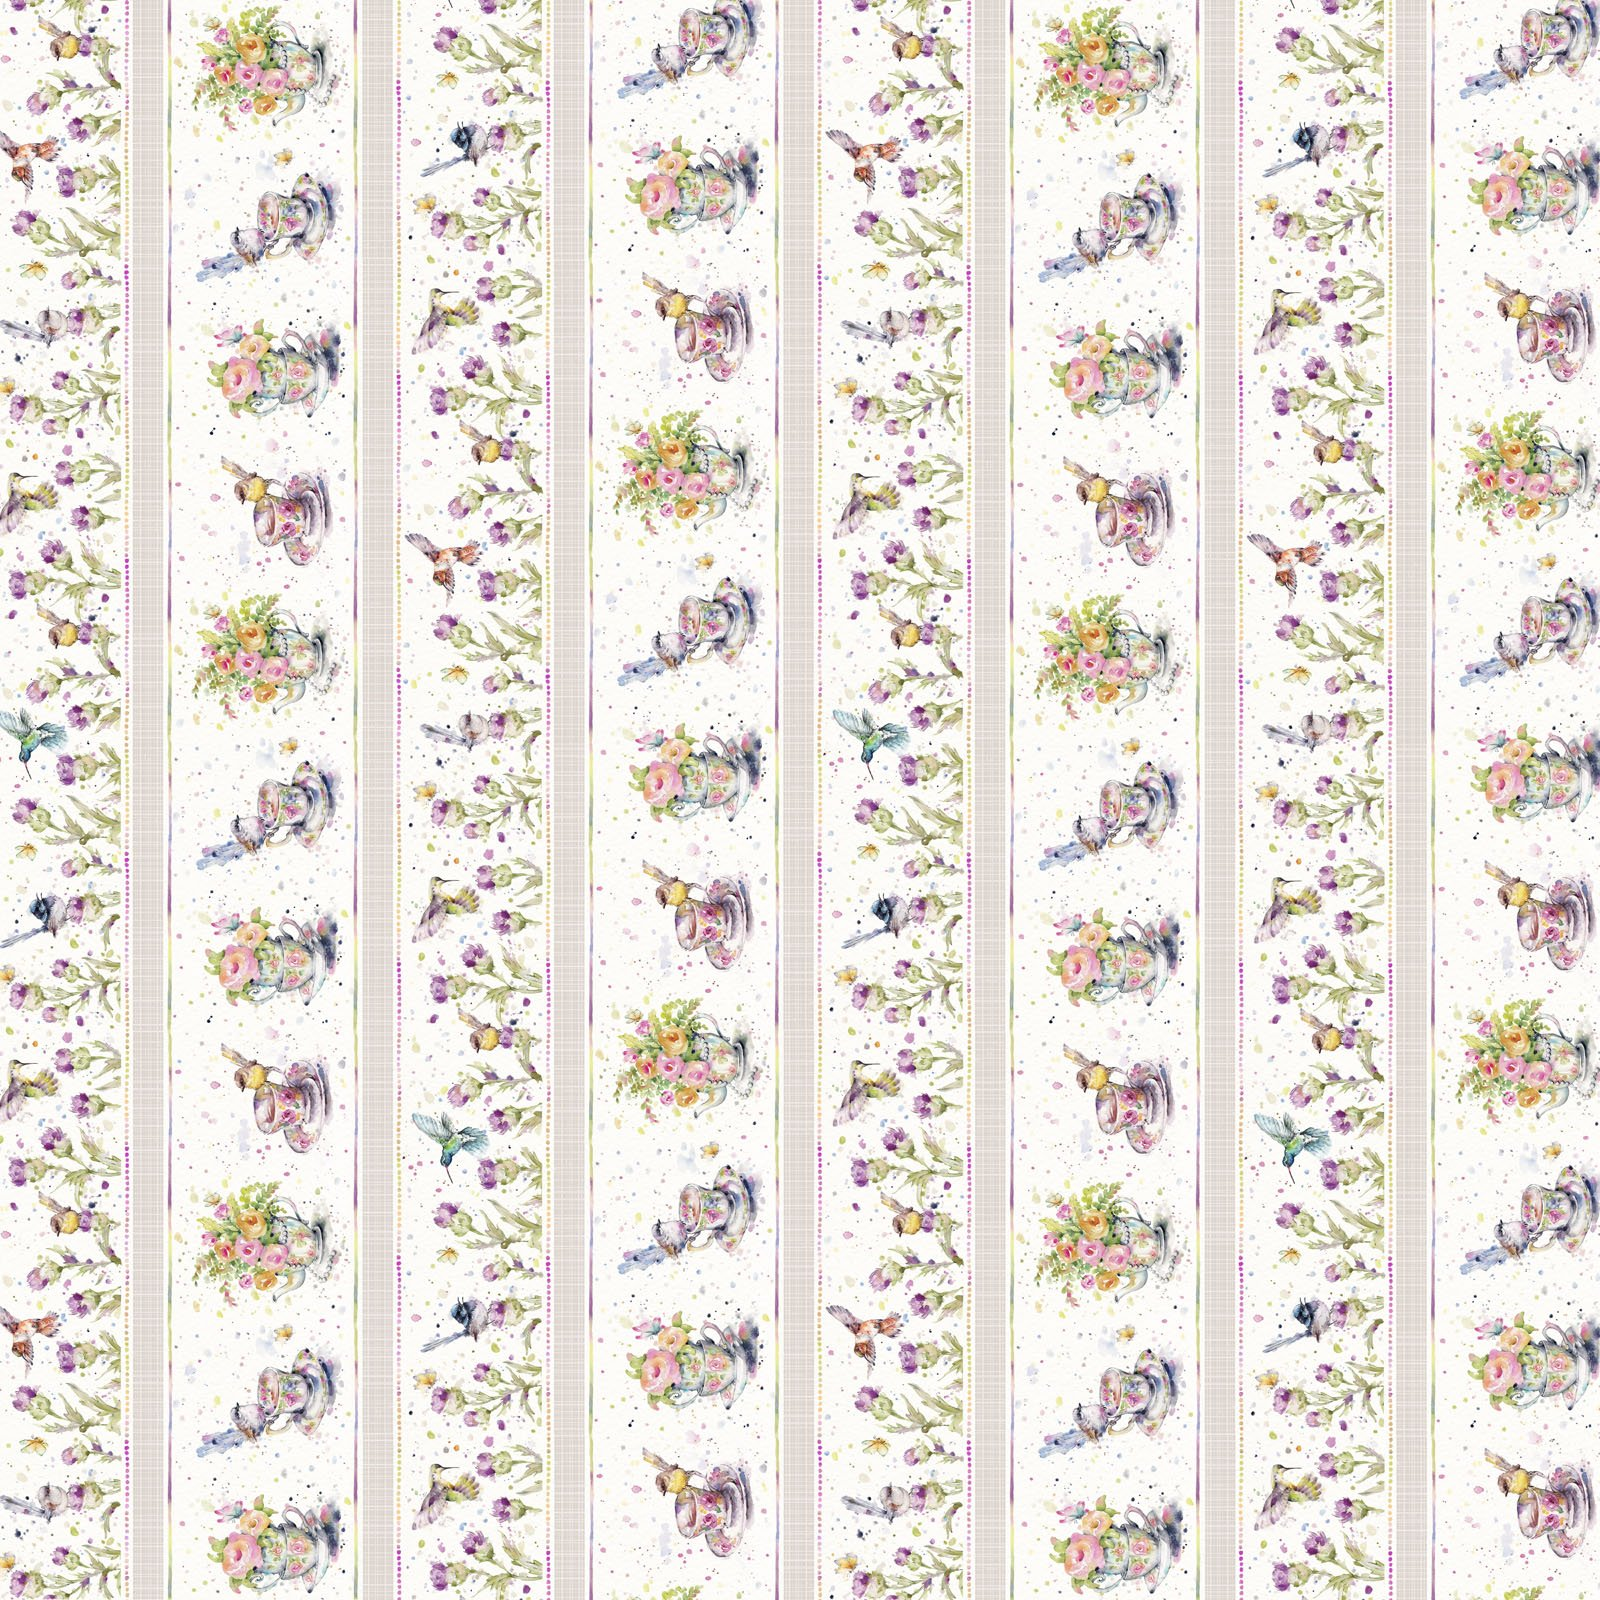 FLFE-4470 MU - FLOWERS&FEATHERS BY SILLIER THAN SALLY WIDE STRIPE MULTI - ARRIVING IN JULY 2021